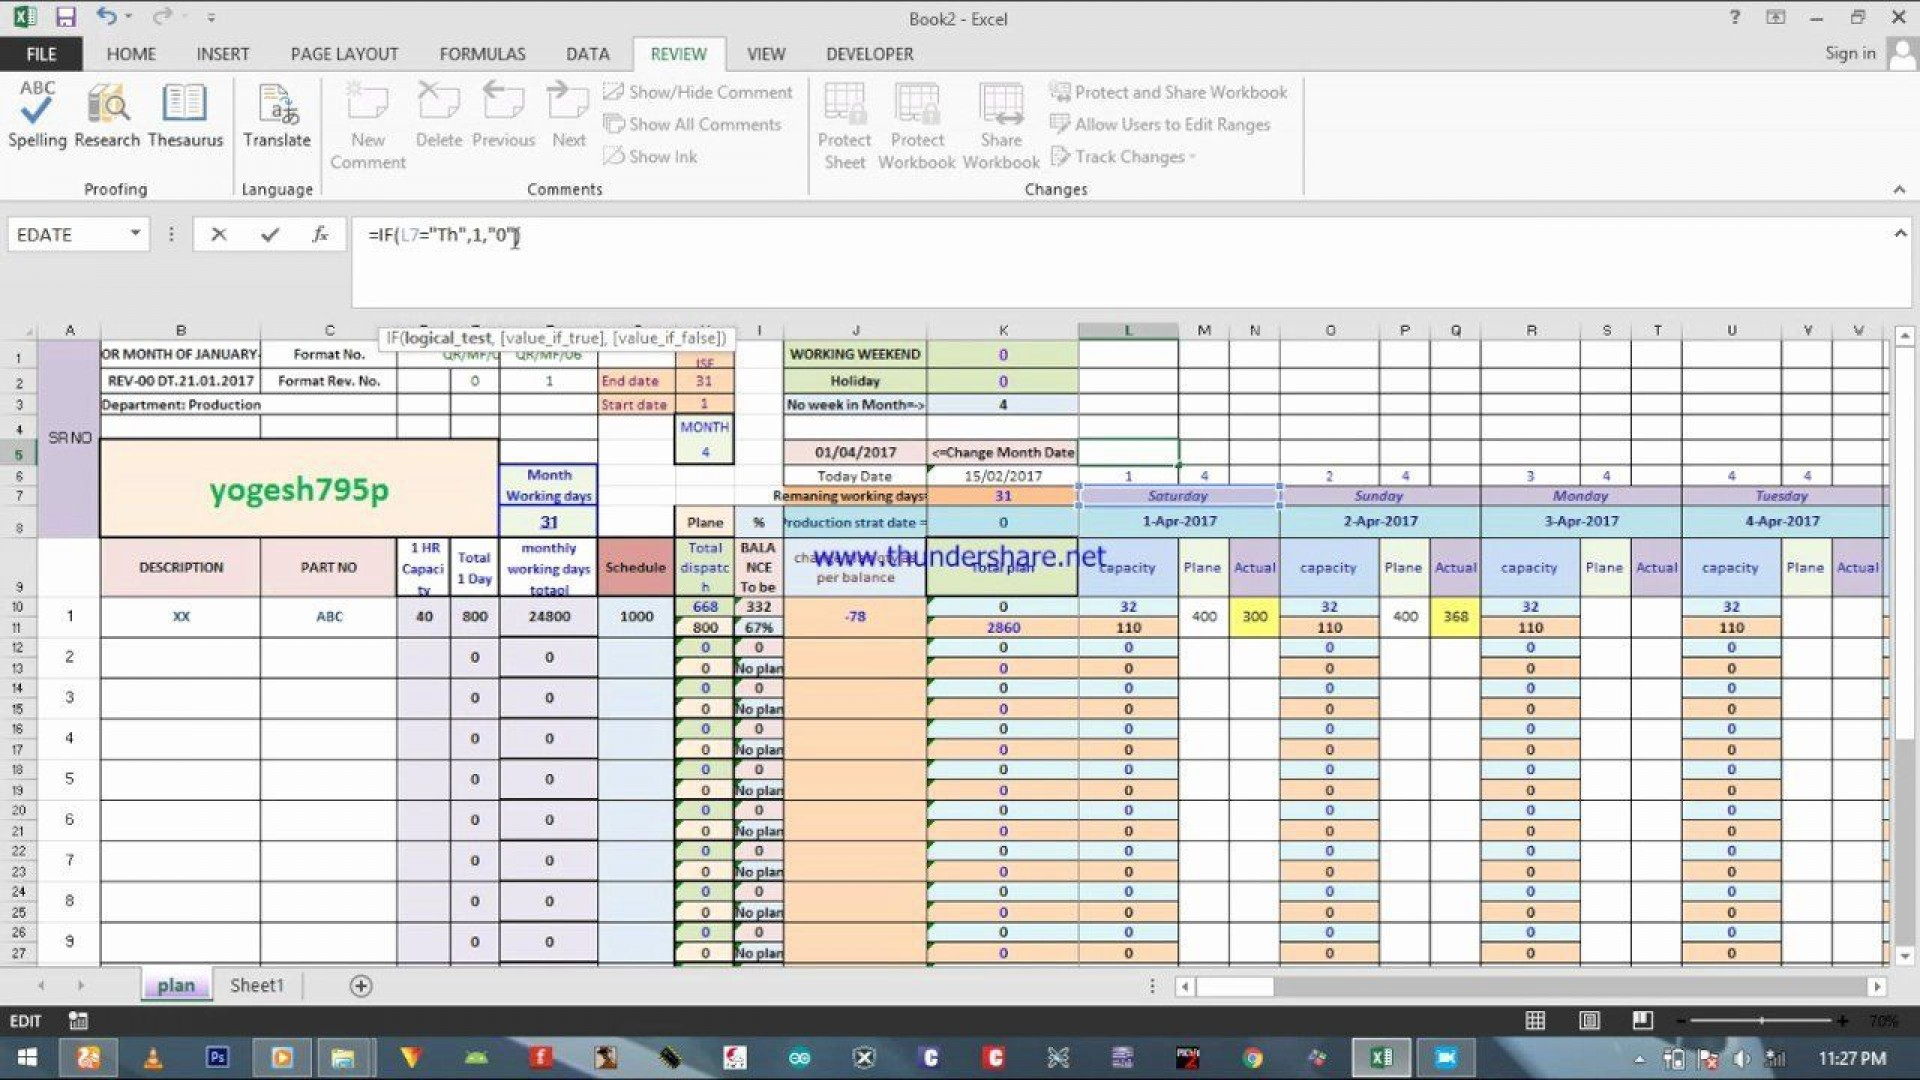 001 Wonderful Production Schedule Template Excel High Definition  Planning Sheet Master1920